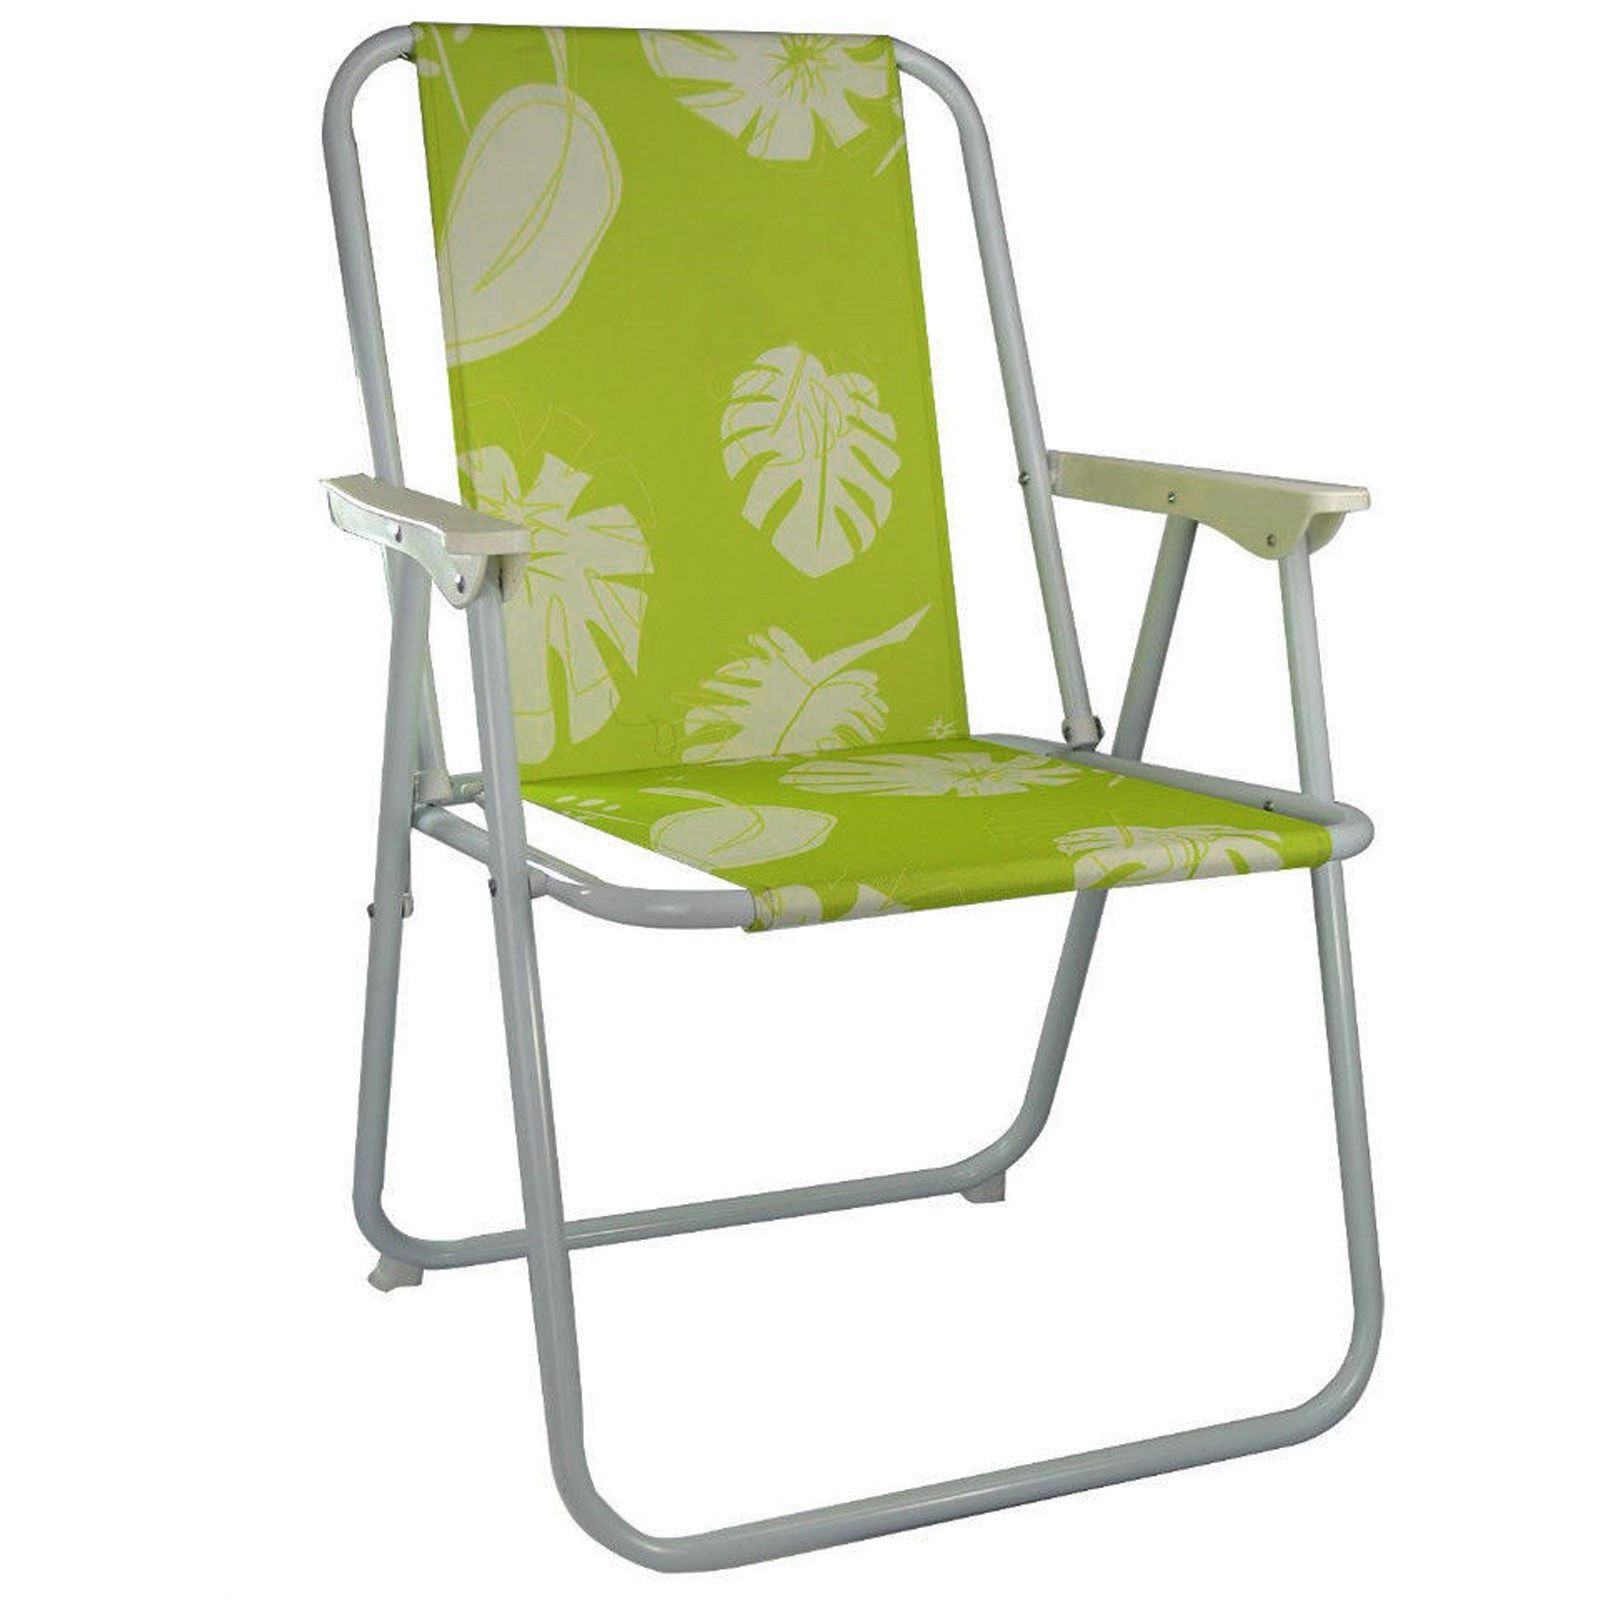 festival folding chair modern wingback canada printed lightweight portable beach